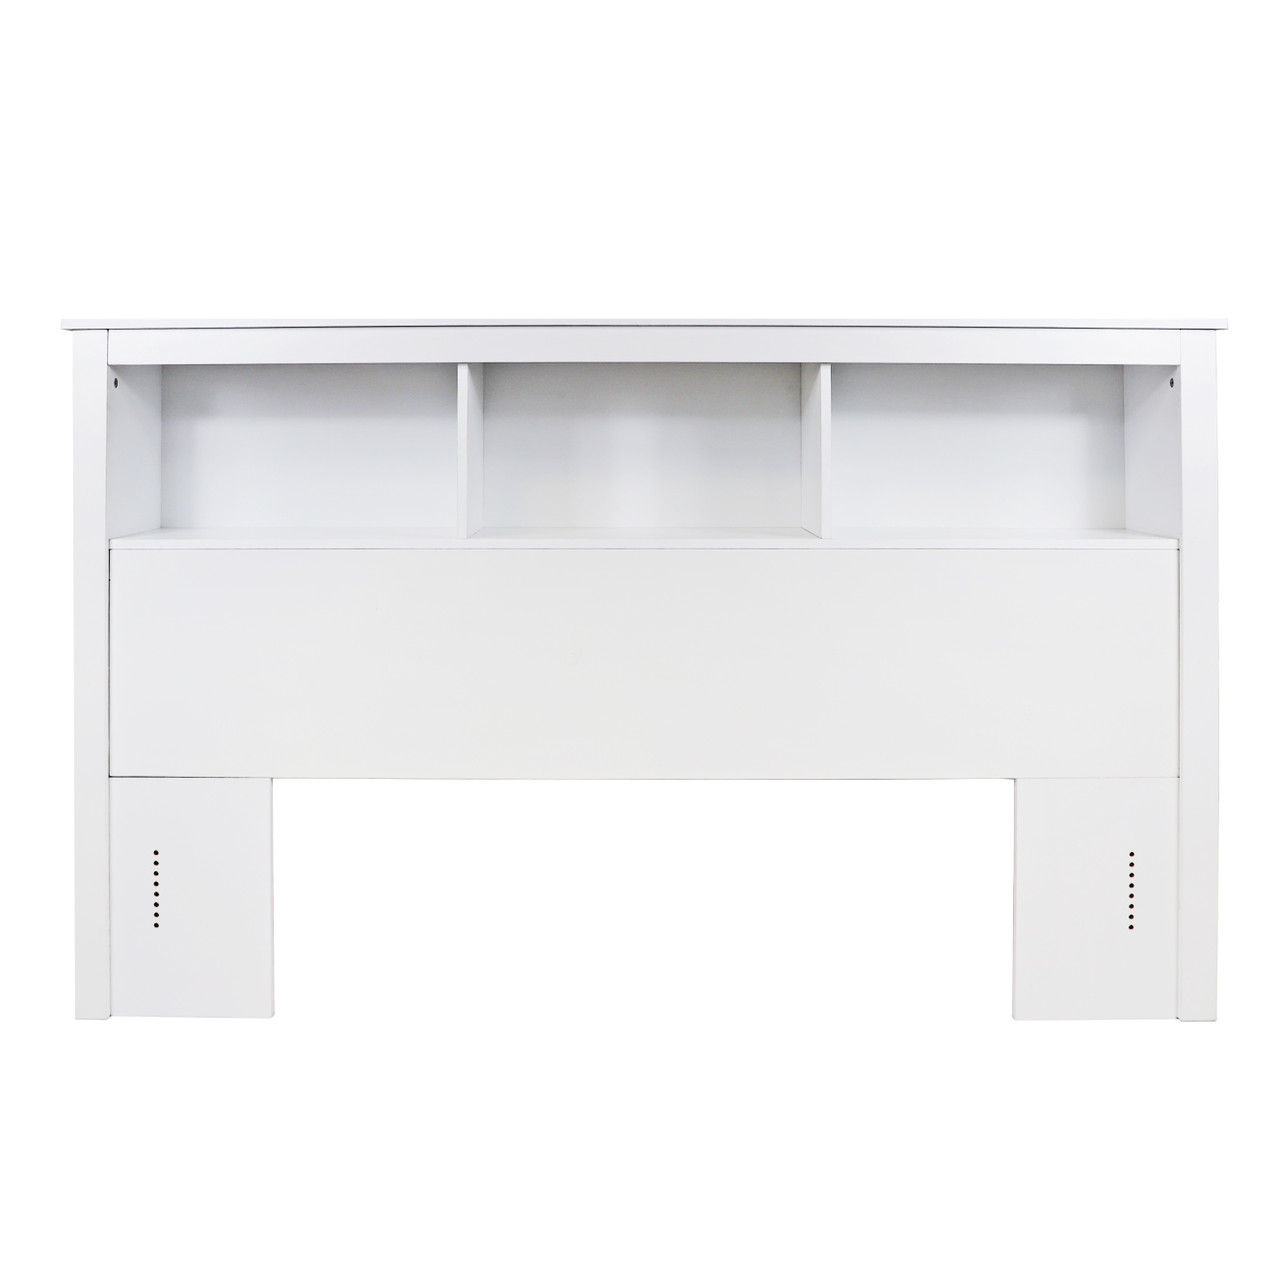 Cap Living Wood Bookcase Headboard With Storage Bedroom Bookcase Headboard Queen Size Solid White